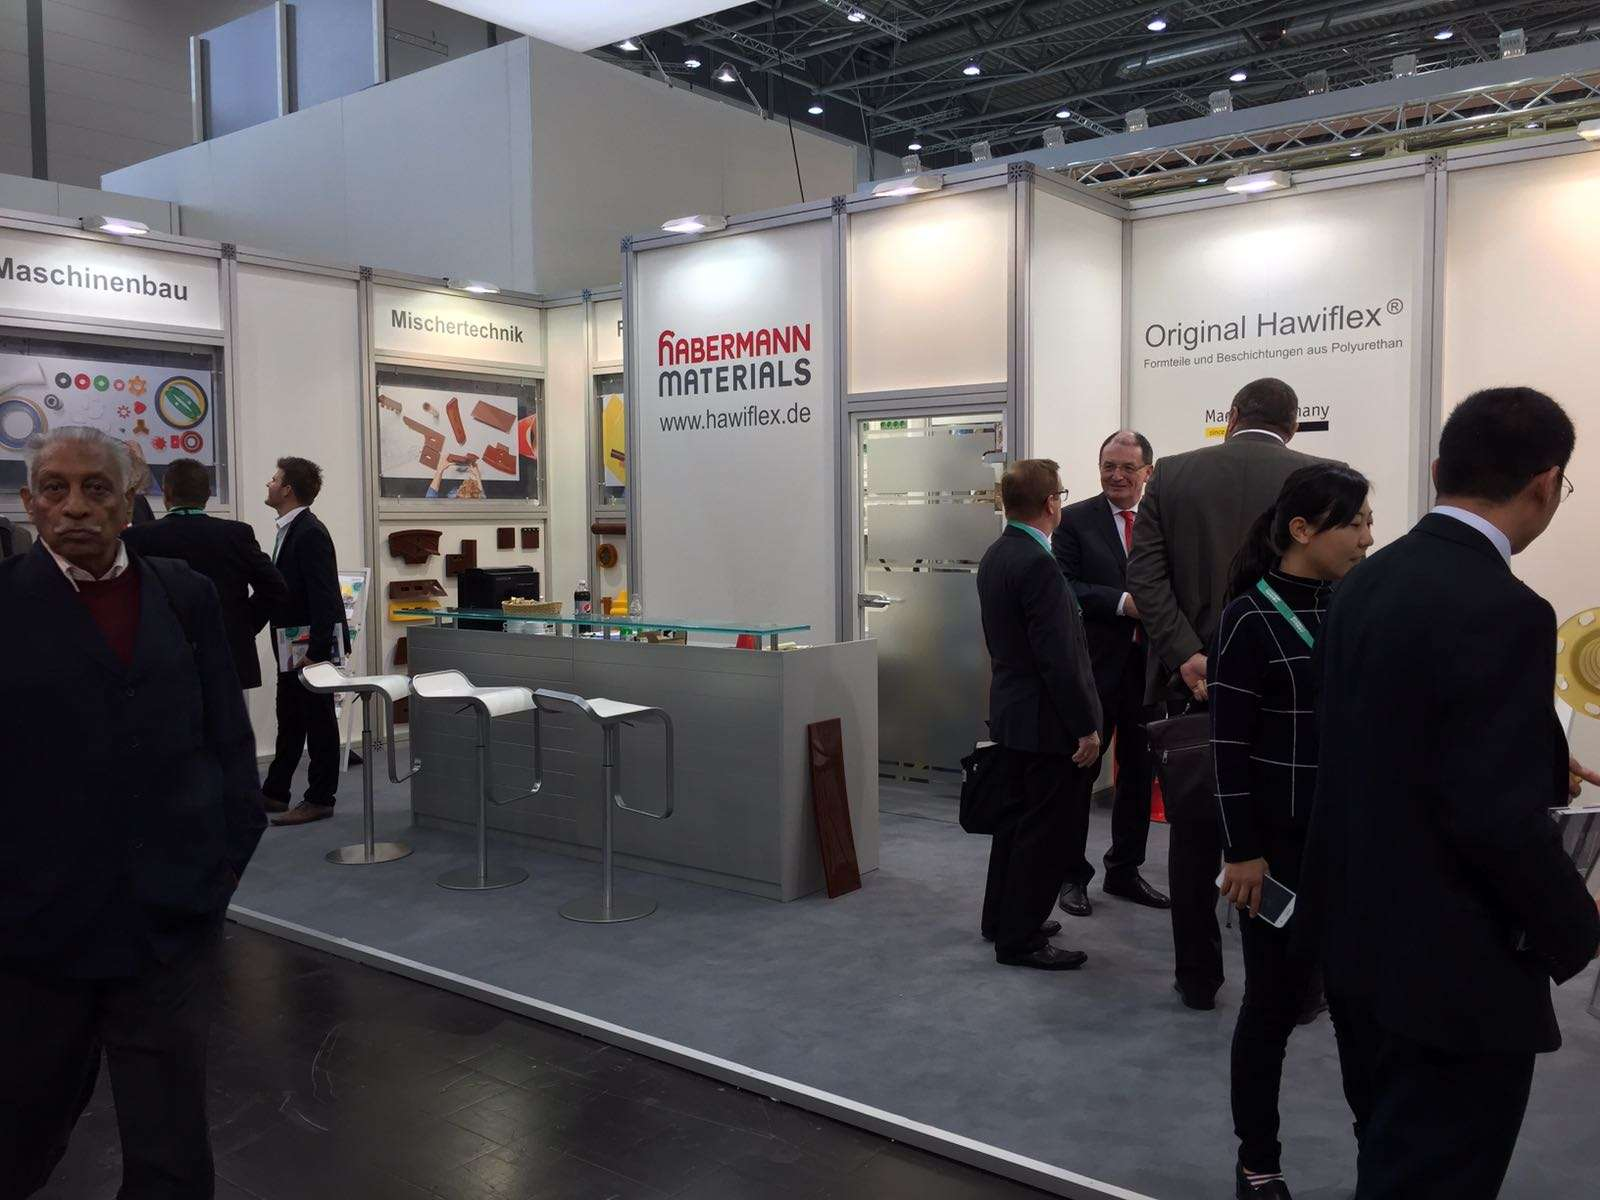 Messestand von habermann materials in Halle 8a / B41